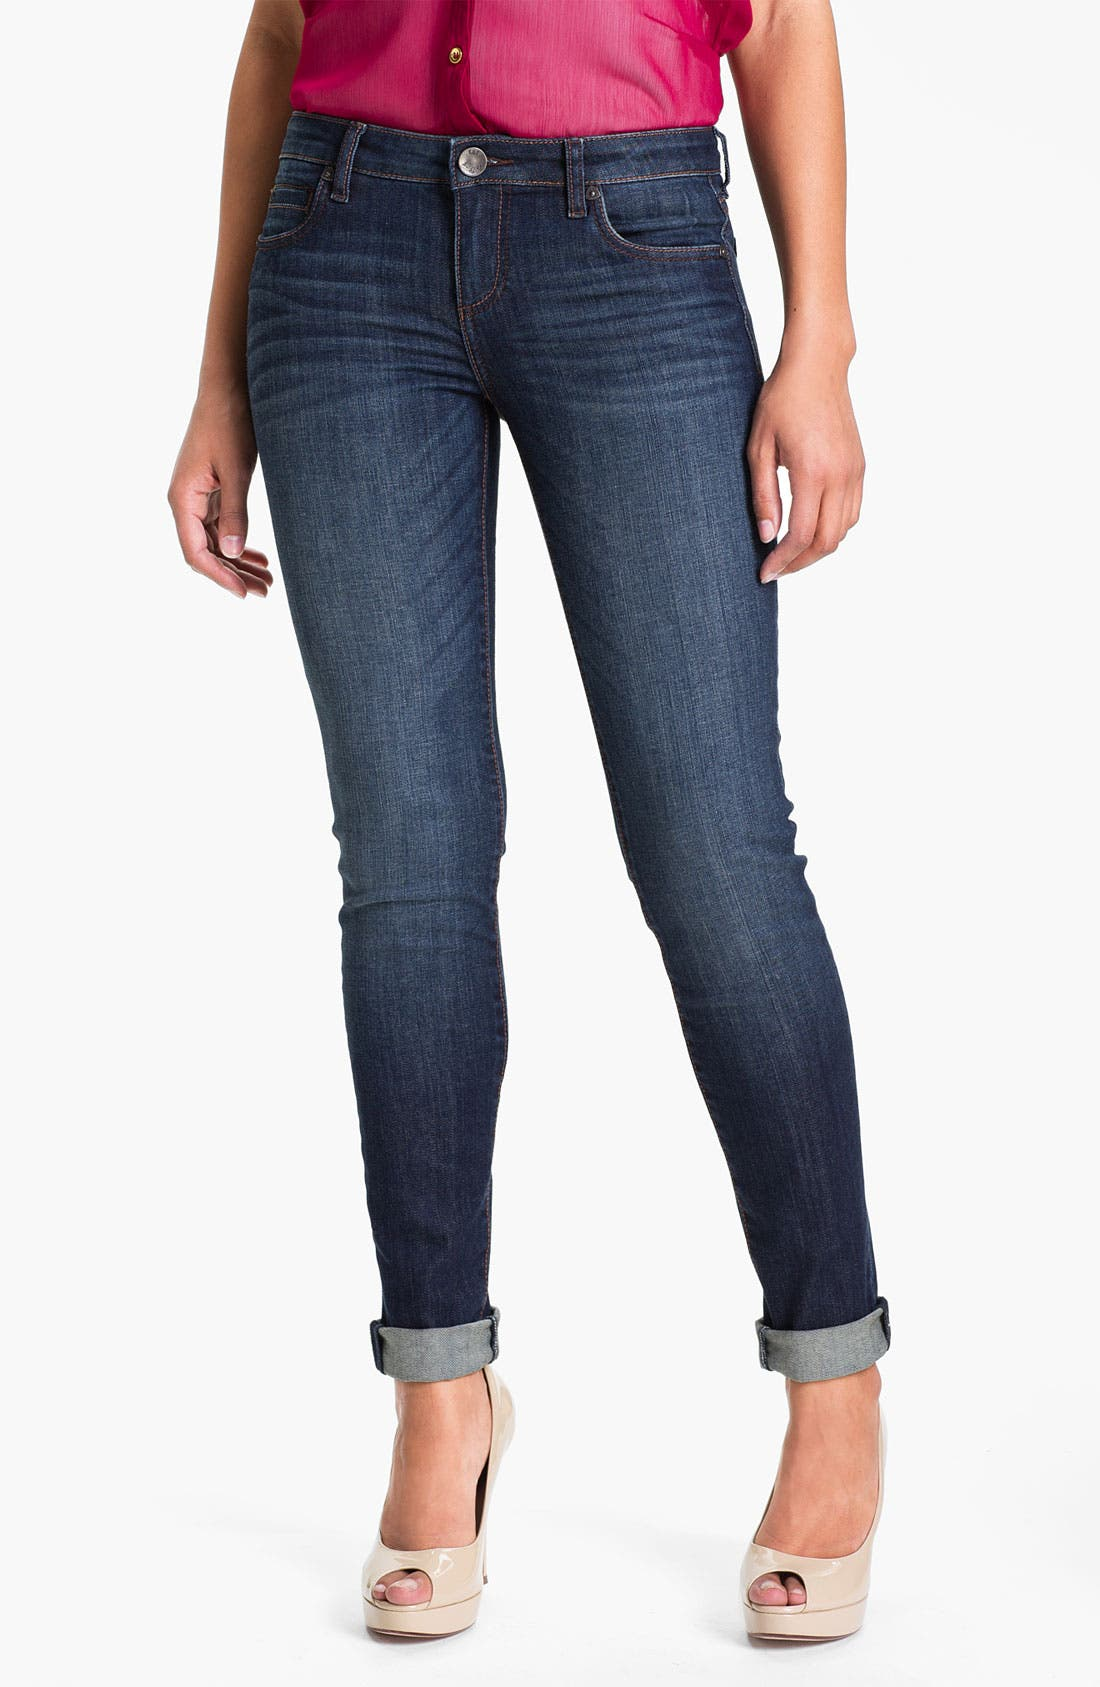 Main Image - KUT from the Kloth 'Diana' Skinny Jeans (Wise) (Online Only)